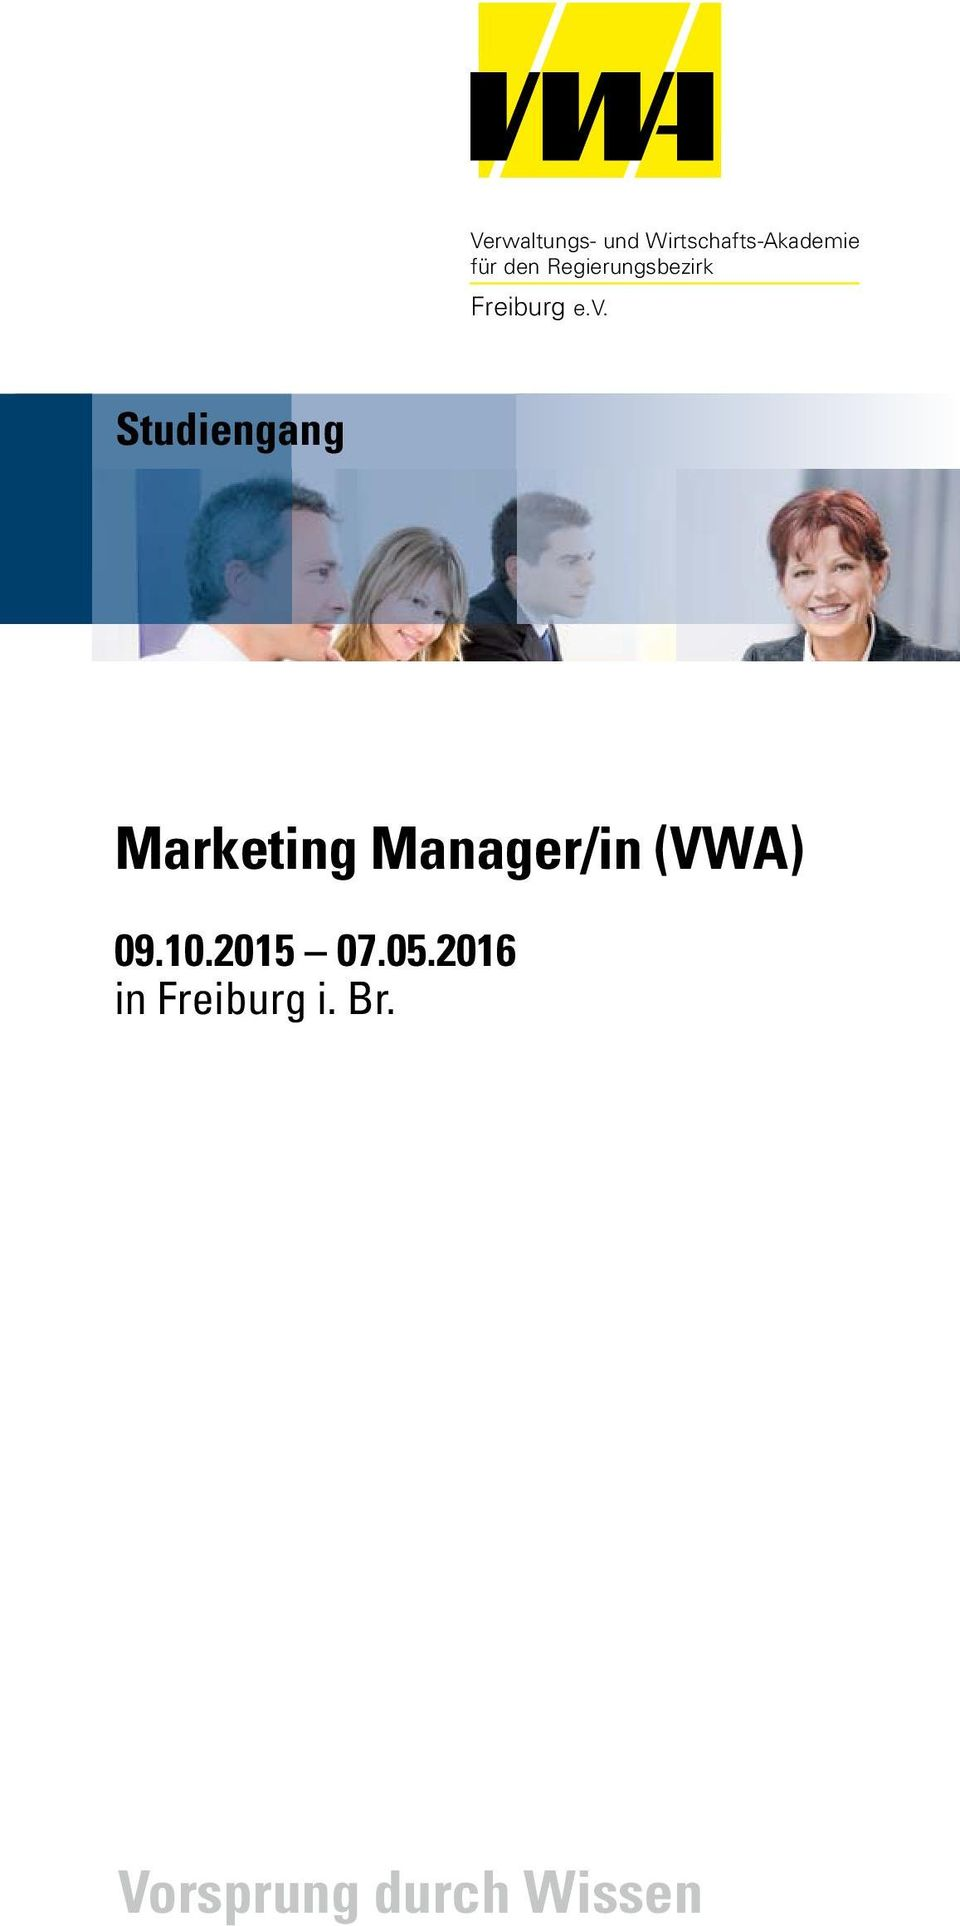 Marketing Manager/in (VWA) 09.10.